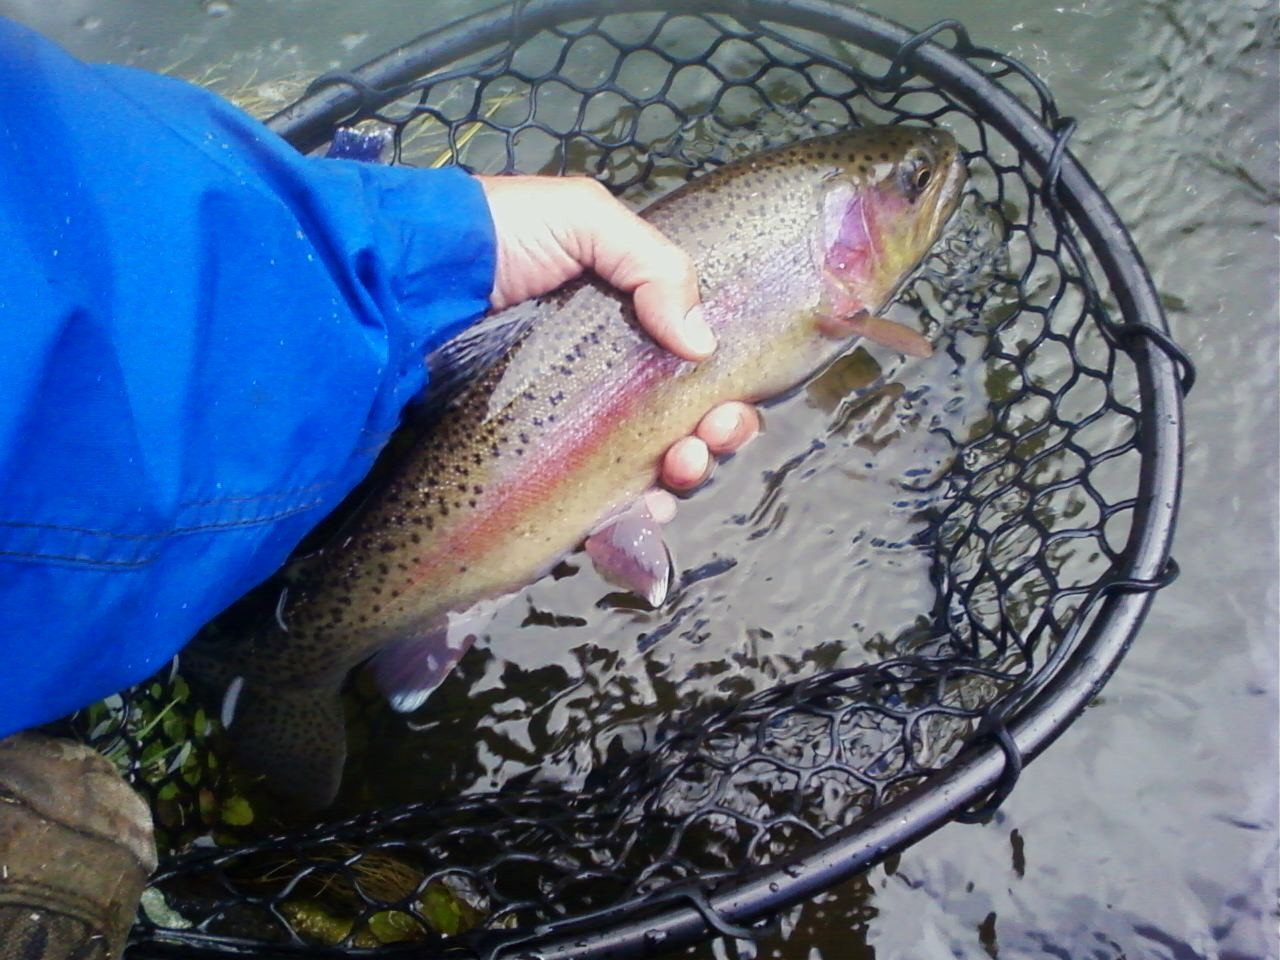 A picture of a person holding a rainbow trout pulled from a fishing net.